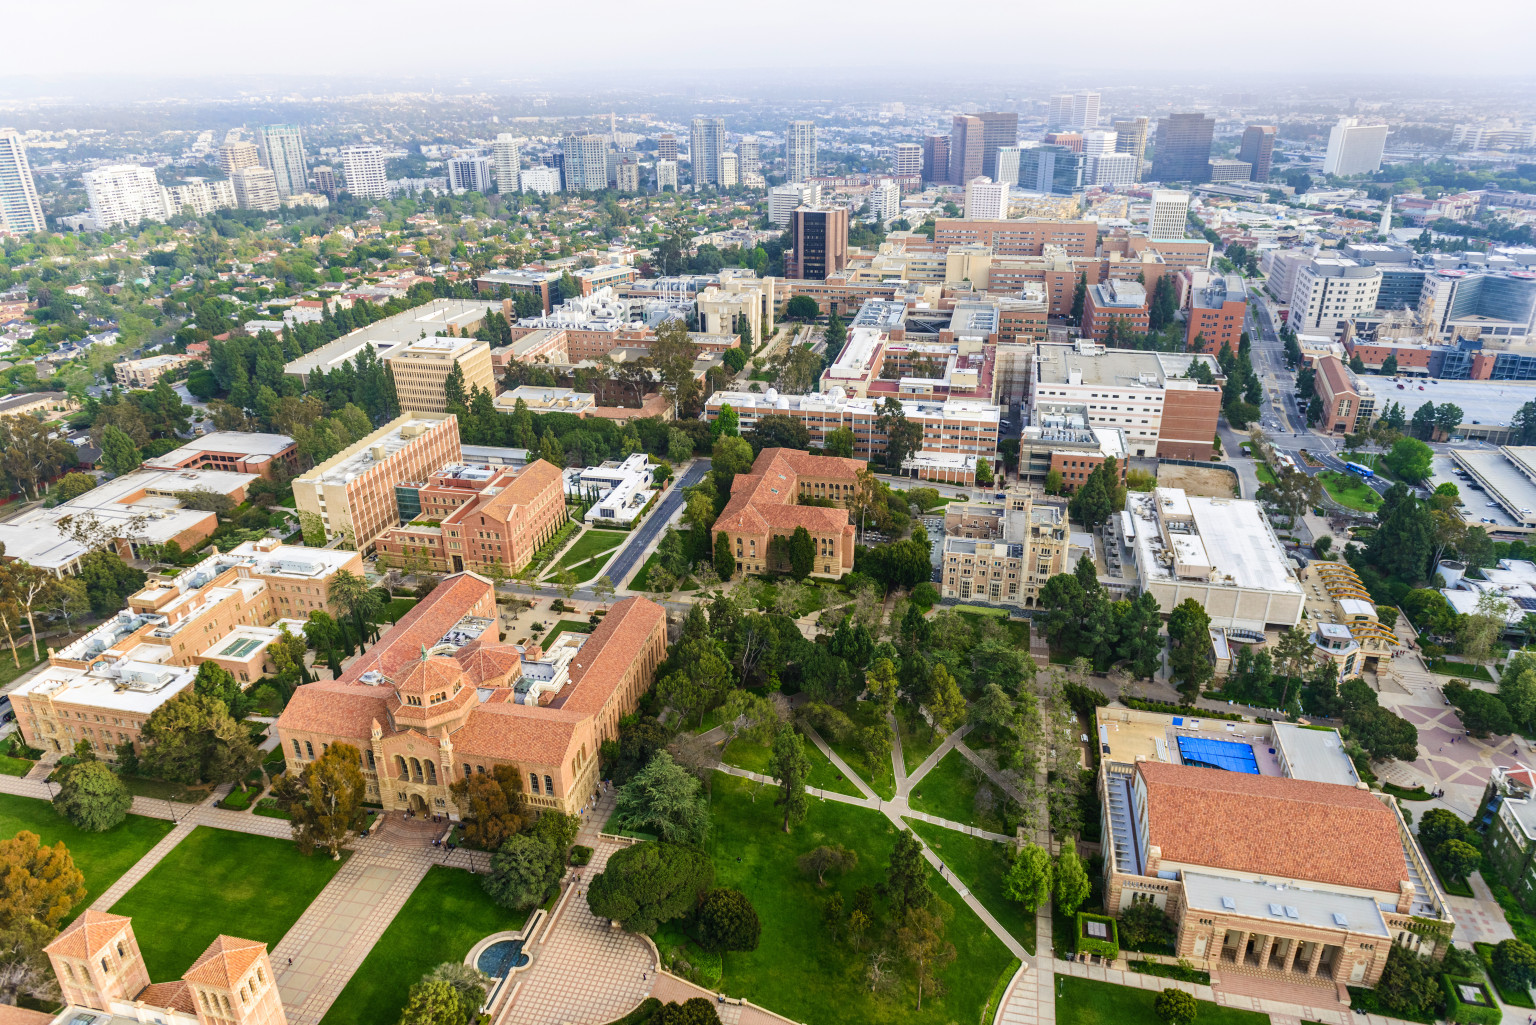 penn law map with Ucla Illegal Immigrant N 3862671 on Sweeten Alumni House E Craig Sweeten likewise Ucla Illegal Immigrant n 3862671 likewise Activisits sue schwarzenegger furthermore George Bush Us Flag further .